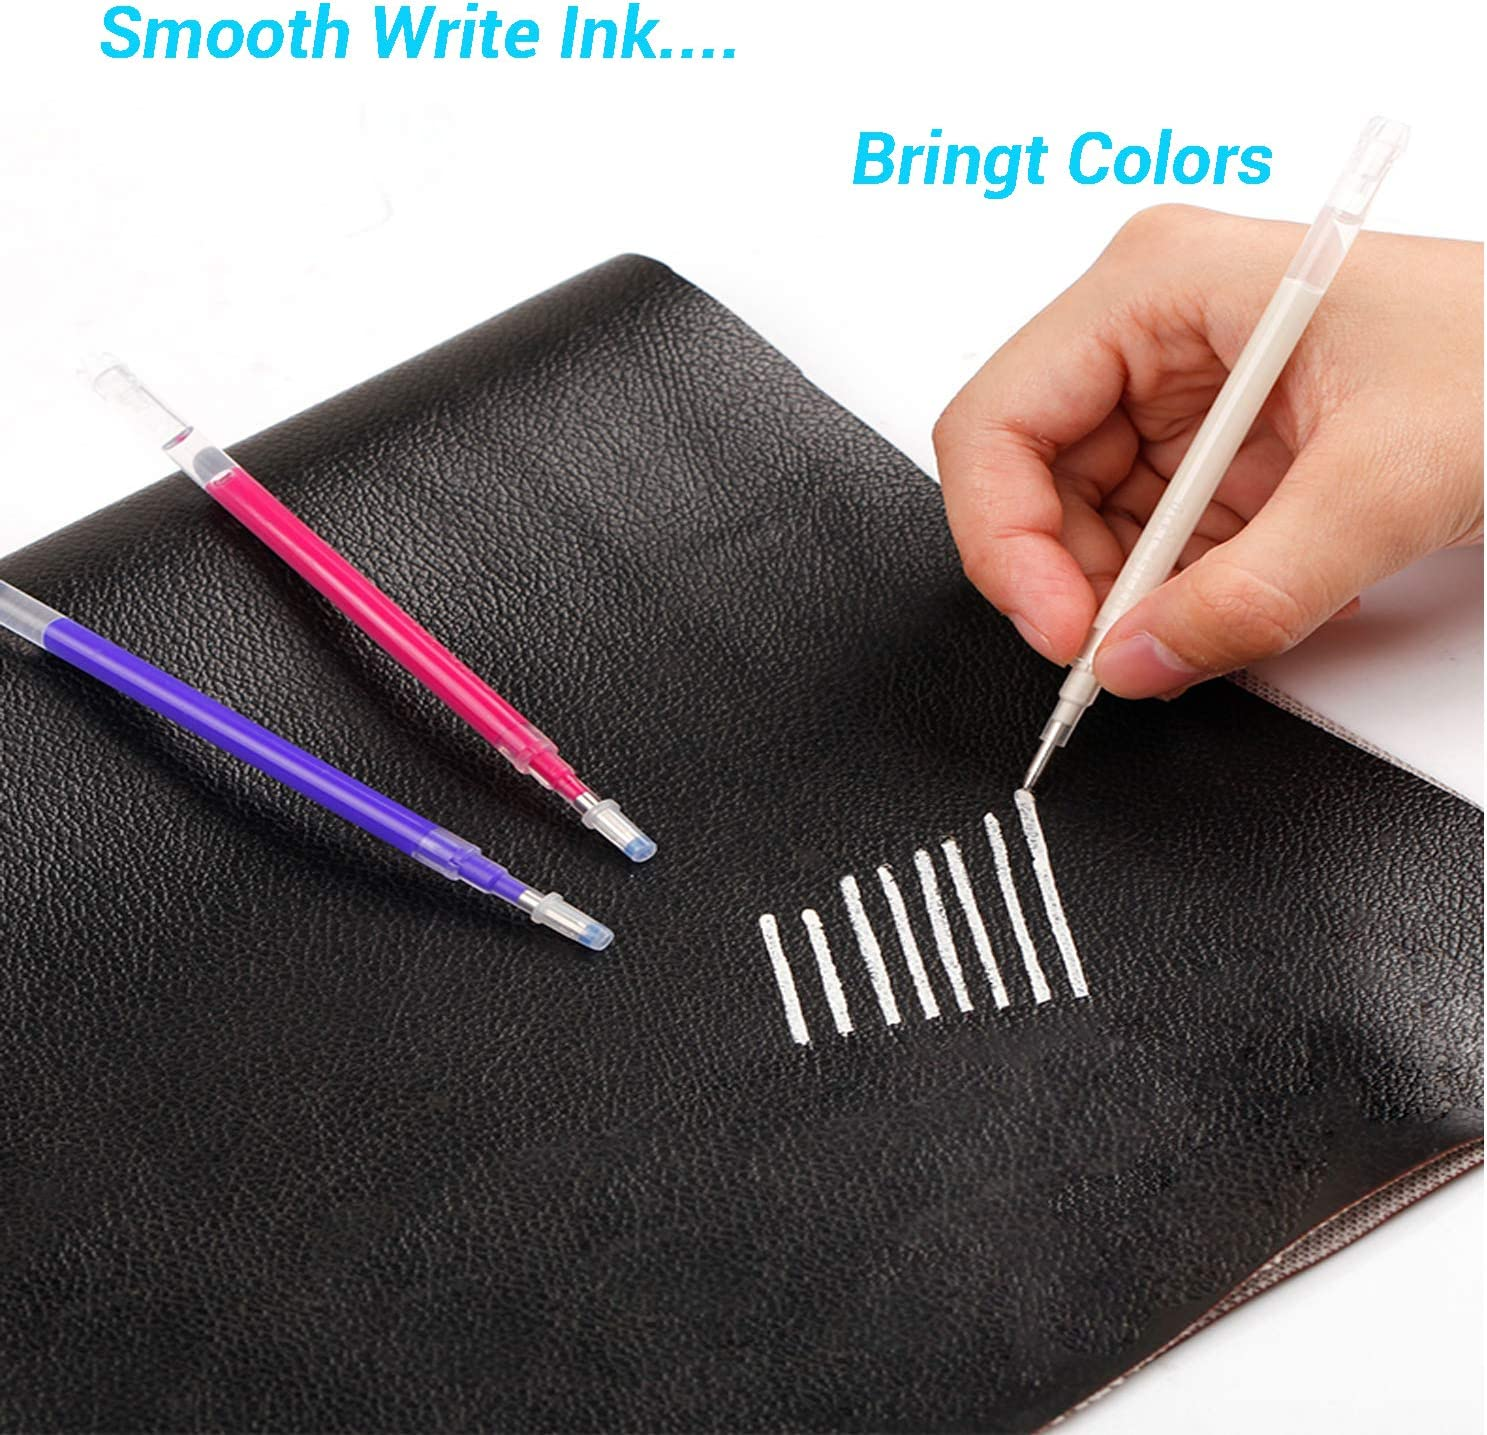 WedFeir Heat Erasable Fabric Marking Pens with 28 Refills for Tailors Sewing, and Quilting Dressmaking, 4 Colors Heat Erase Pens of Fabrics.